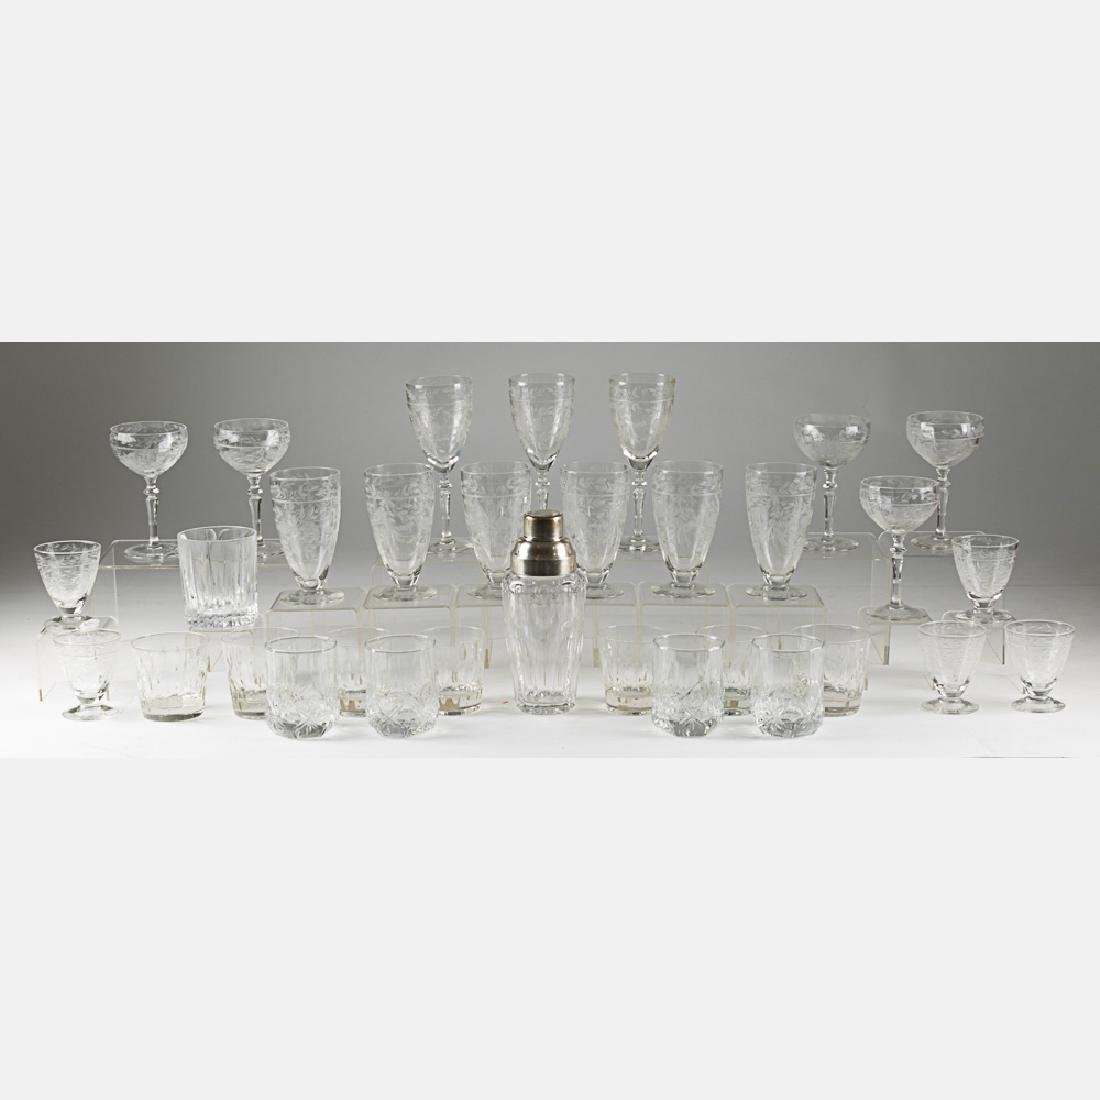 A Collection of Etched Crystal Stemware, 20th Century,